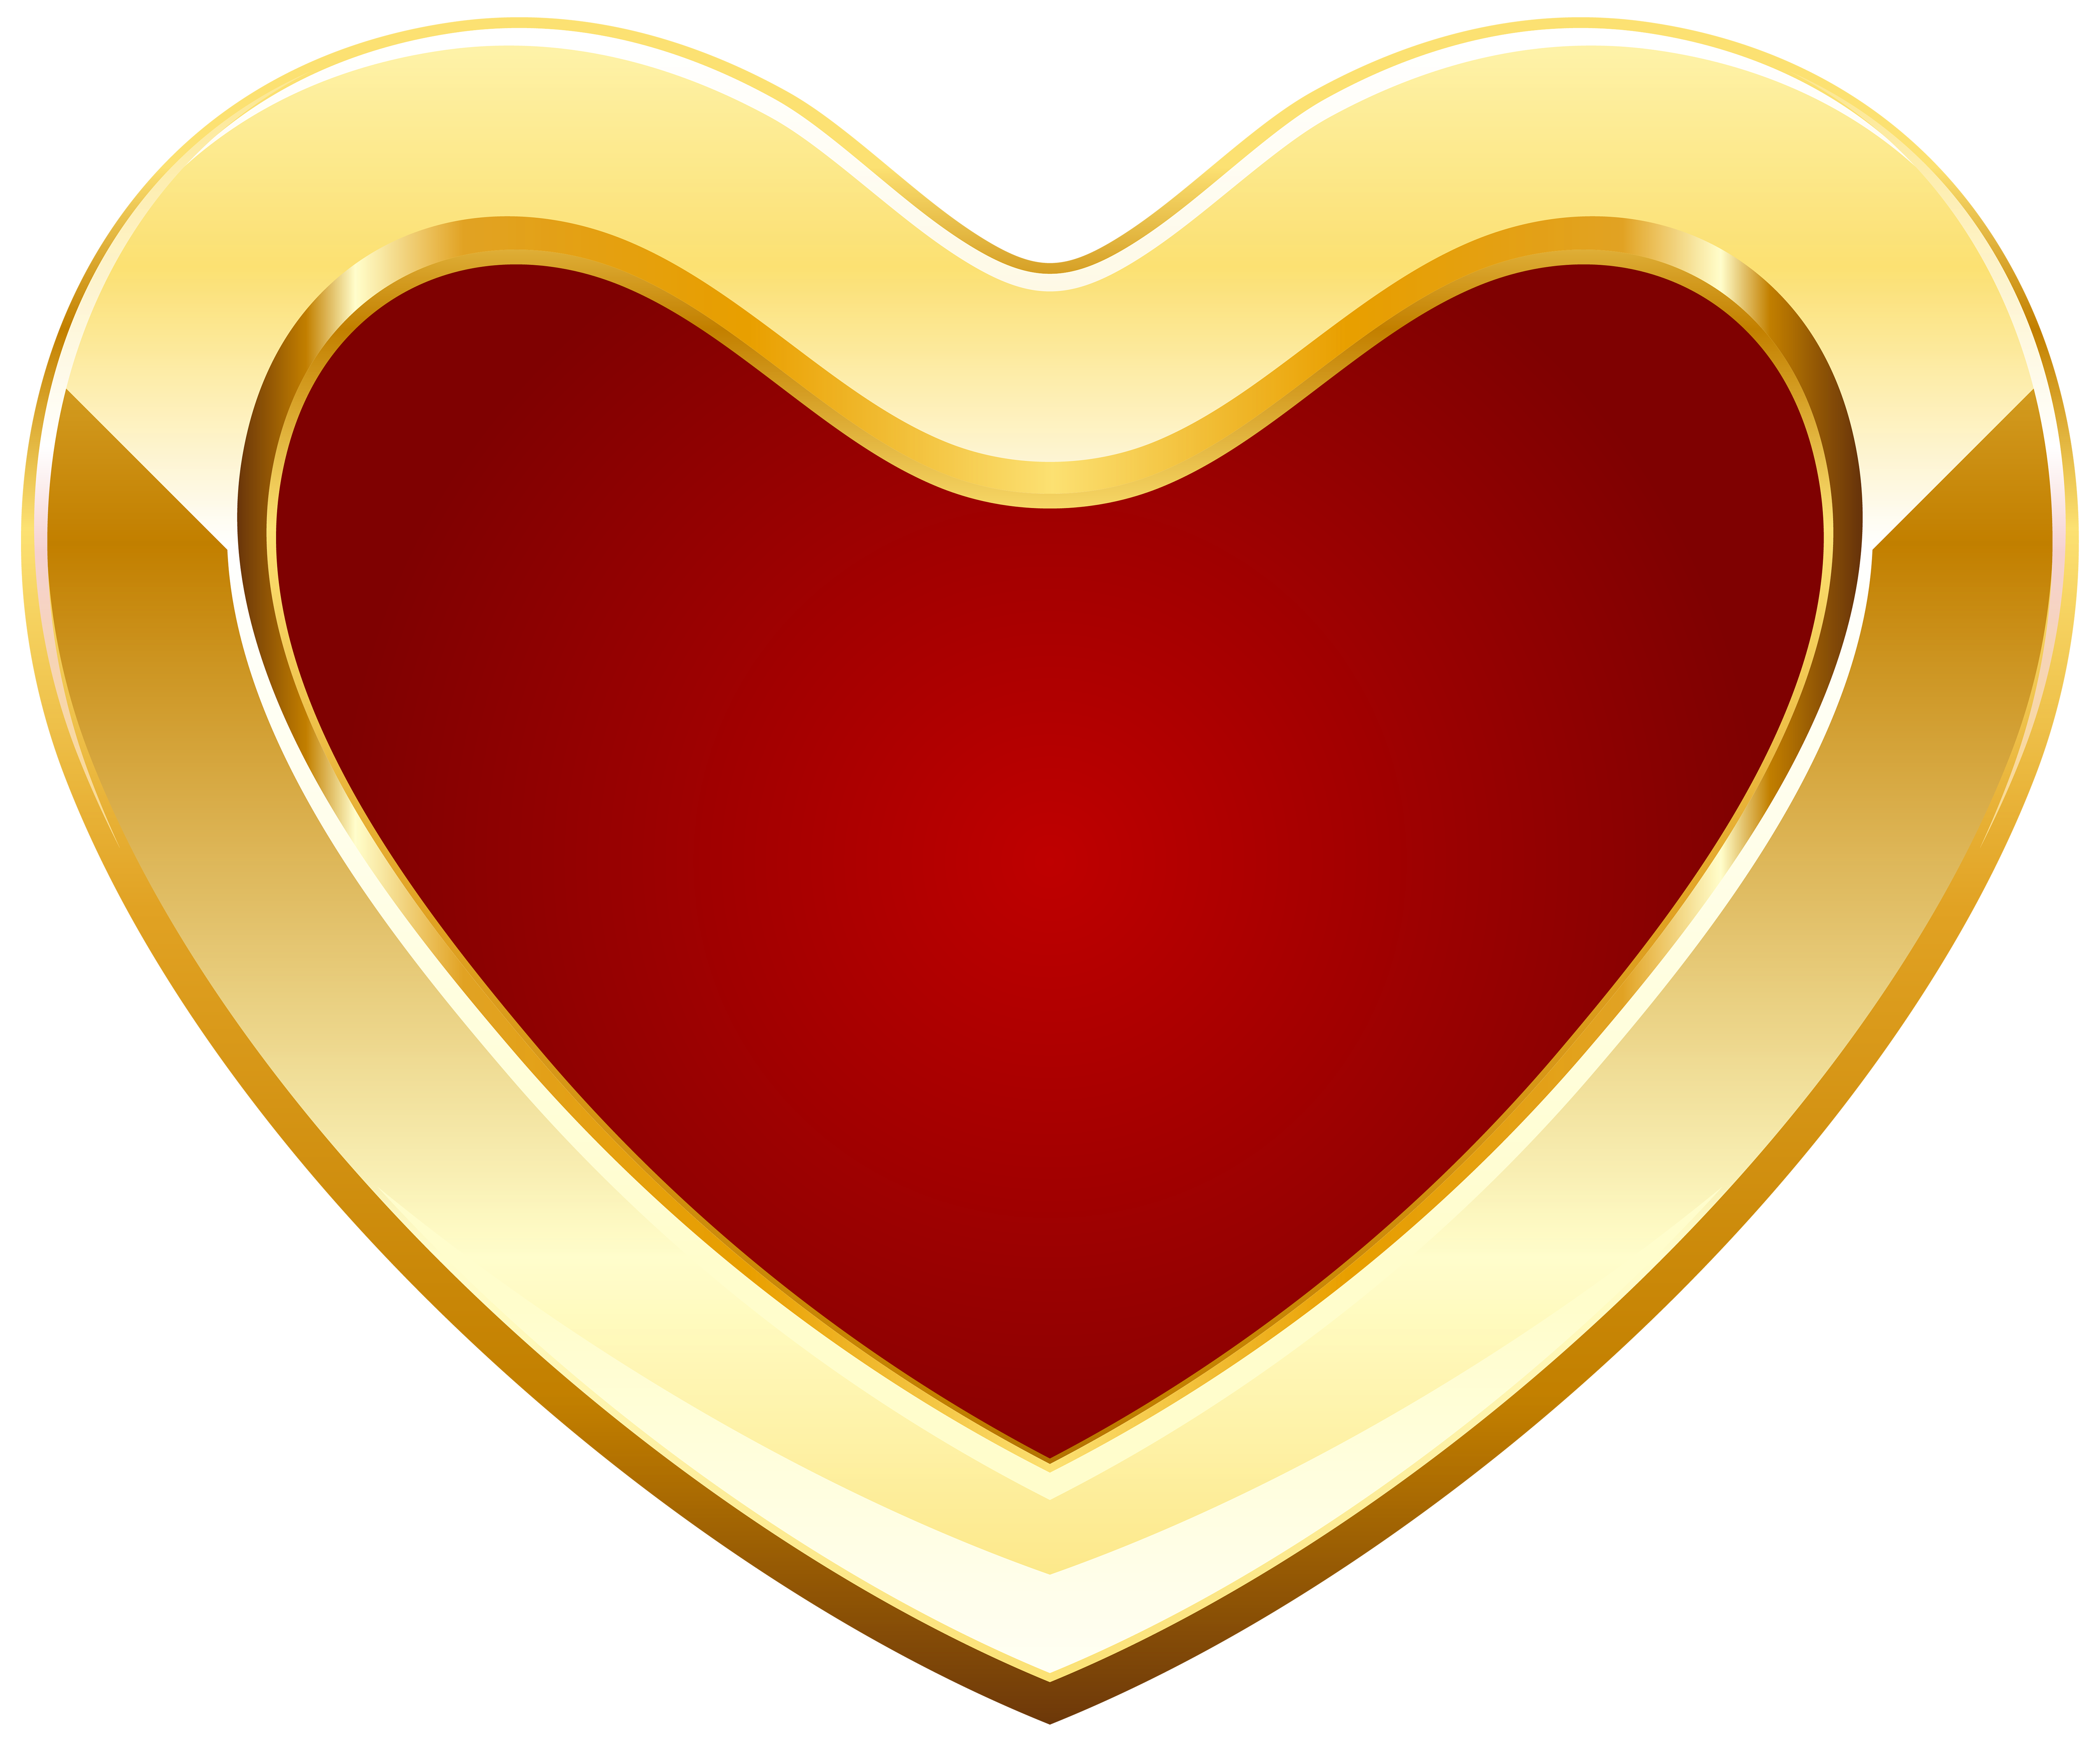 Cartoon heart png. Red and gold clipart